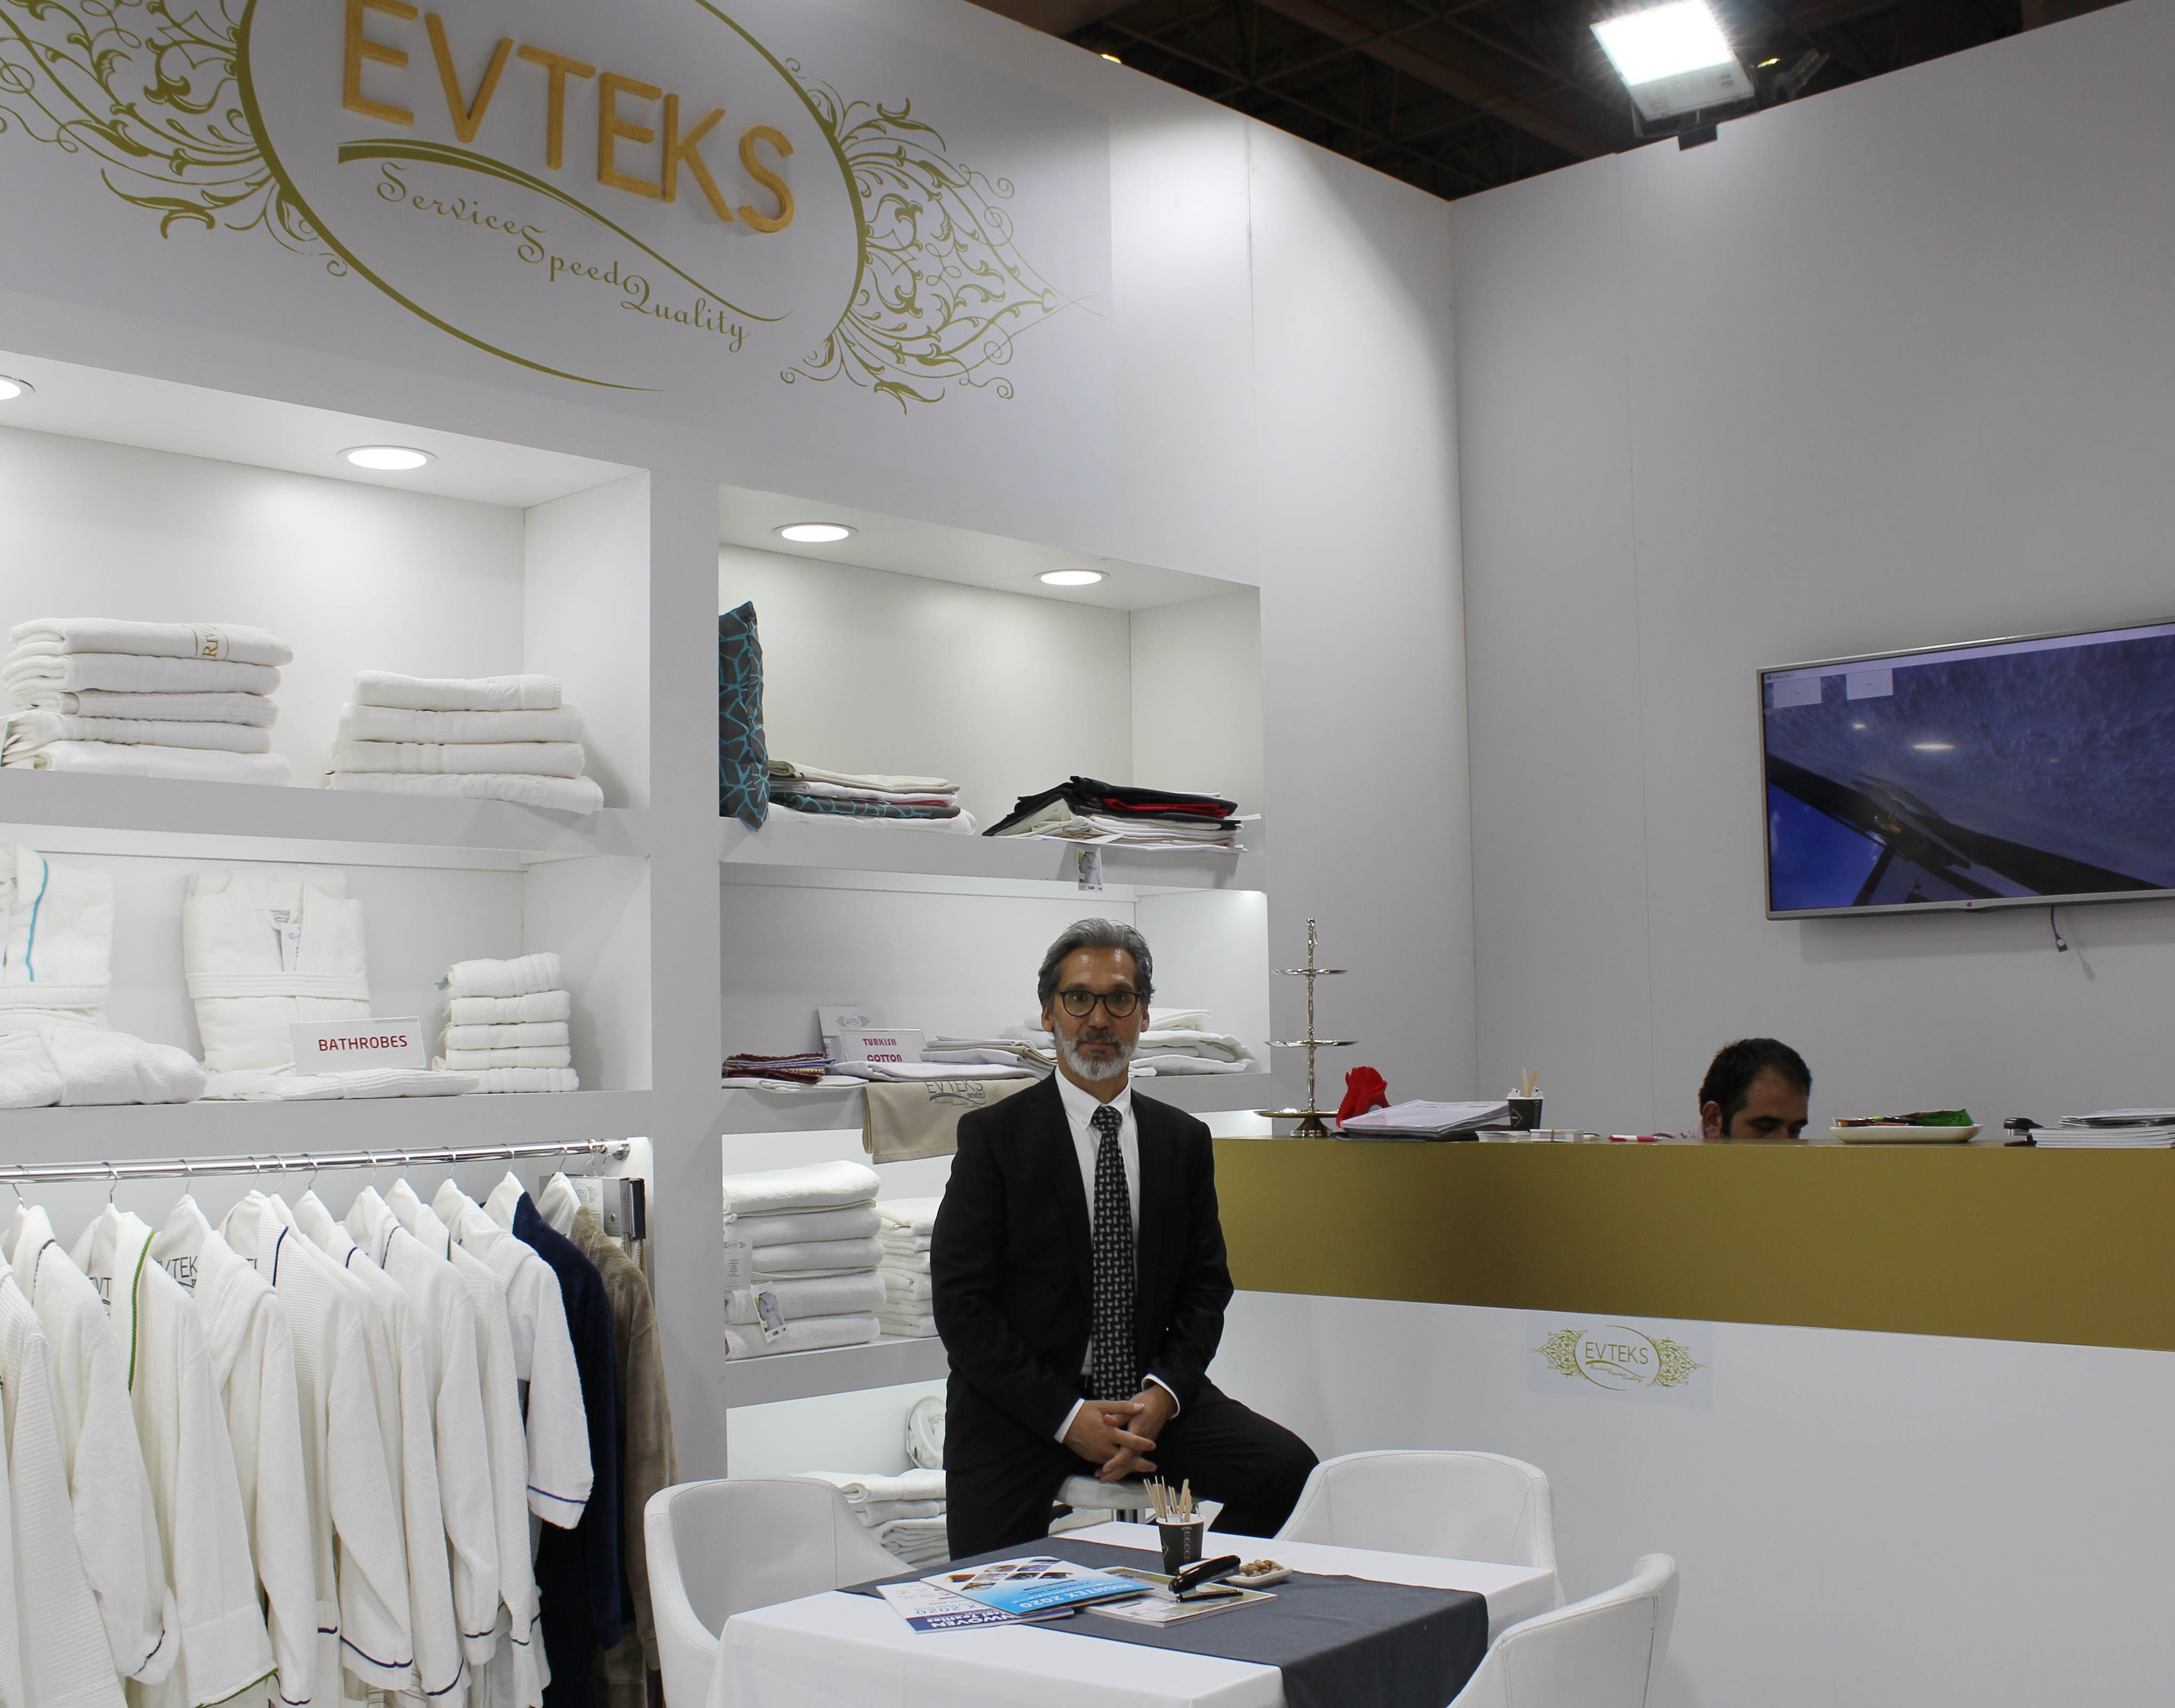 Evteks and Dakotek Break Grounds in Textiles